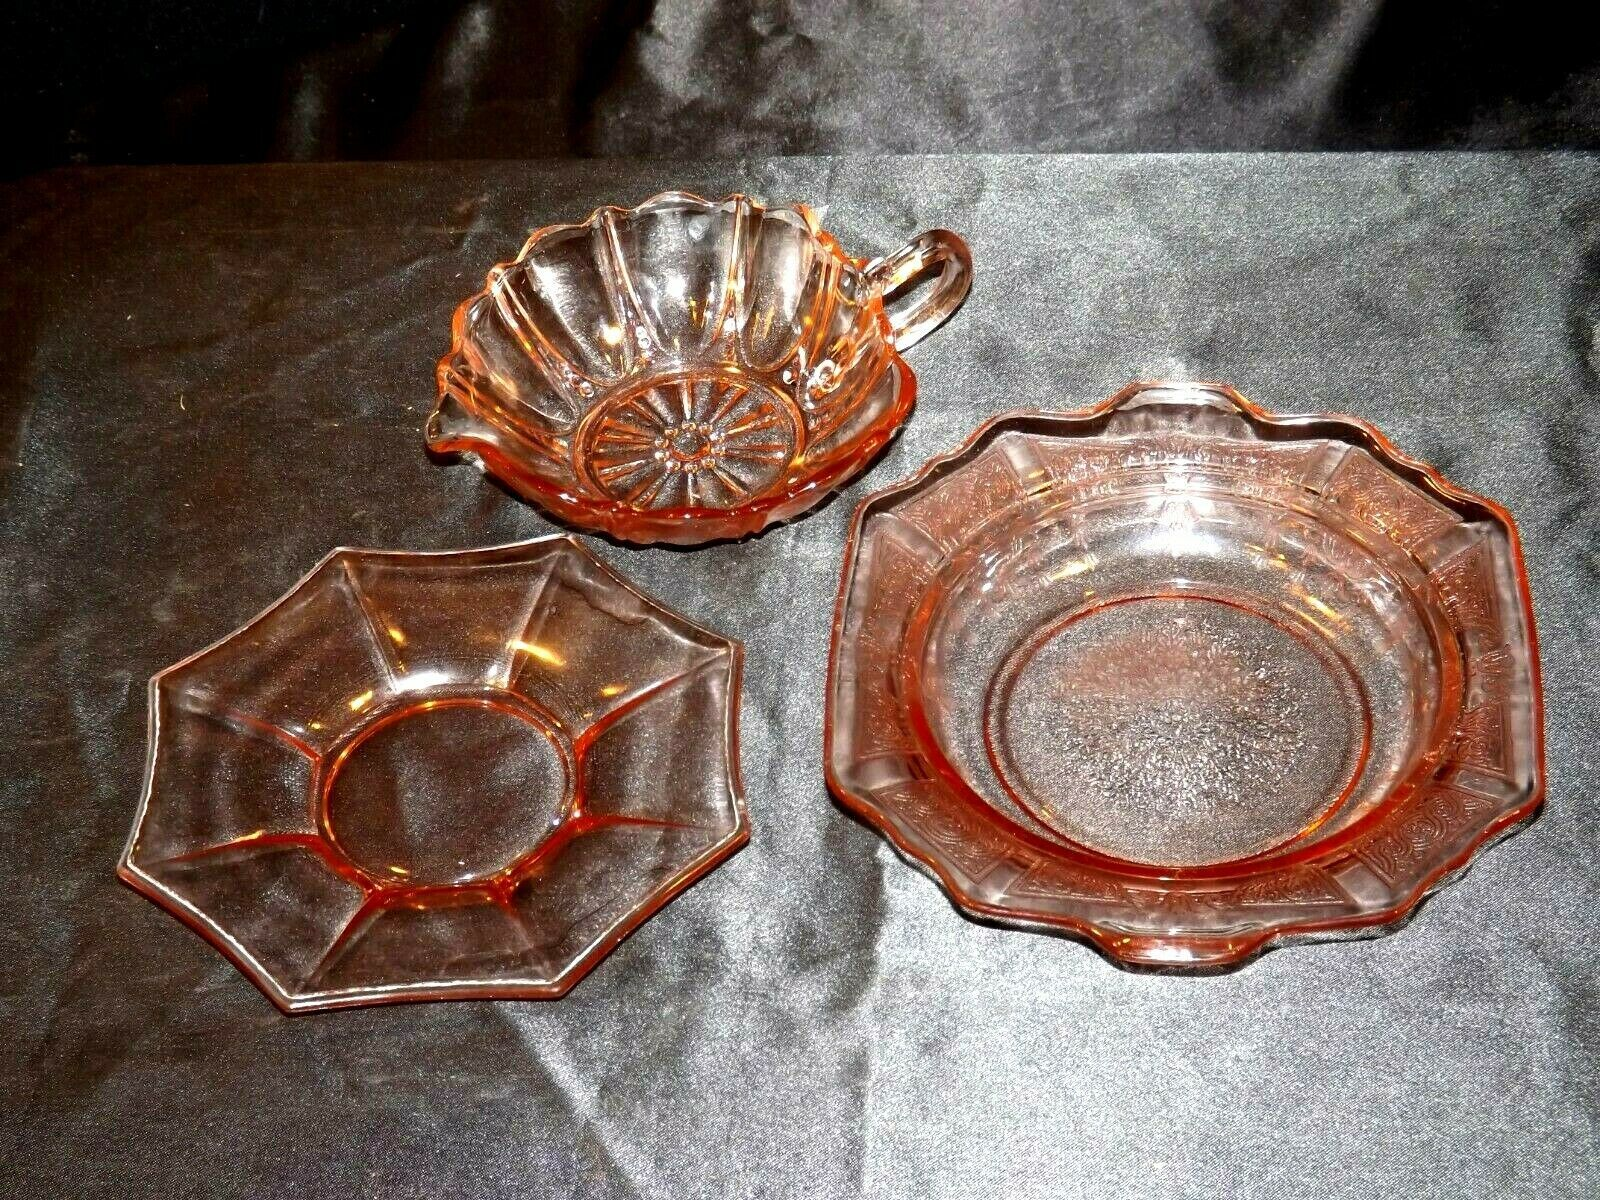 Pink Bowl, Saucer and Cup Depression Glass AA19-CD0035 Vintage